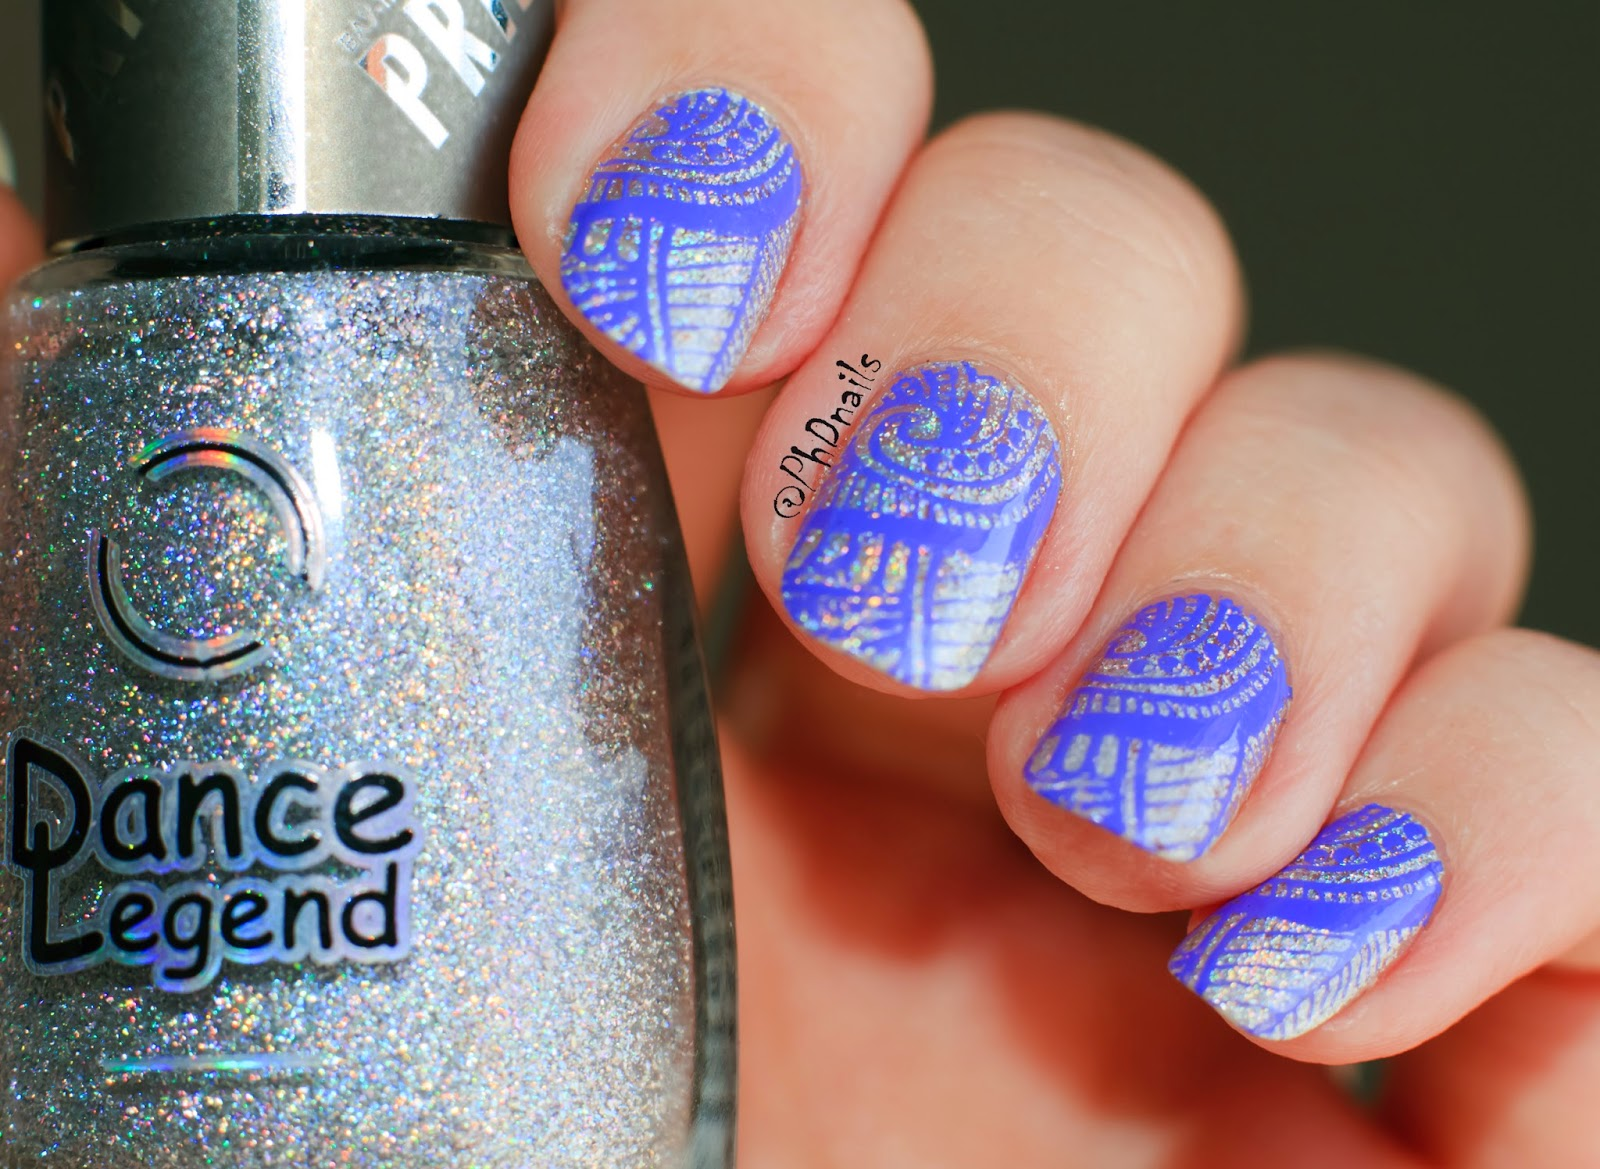 PhD nails: Stamping nail art Silver fantasy with Dance legend Steel ...